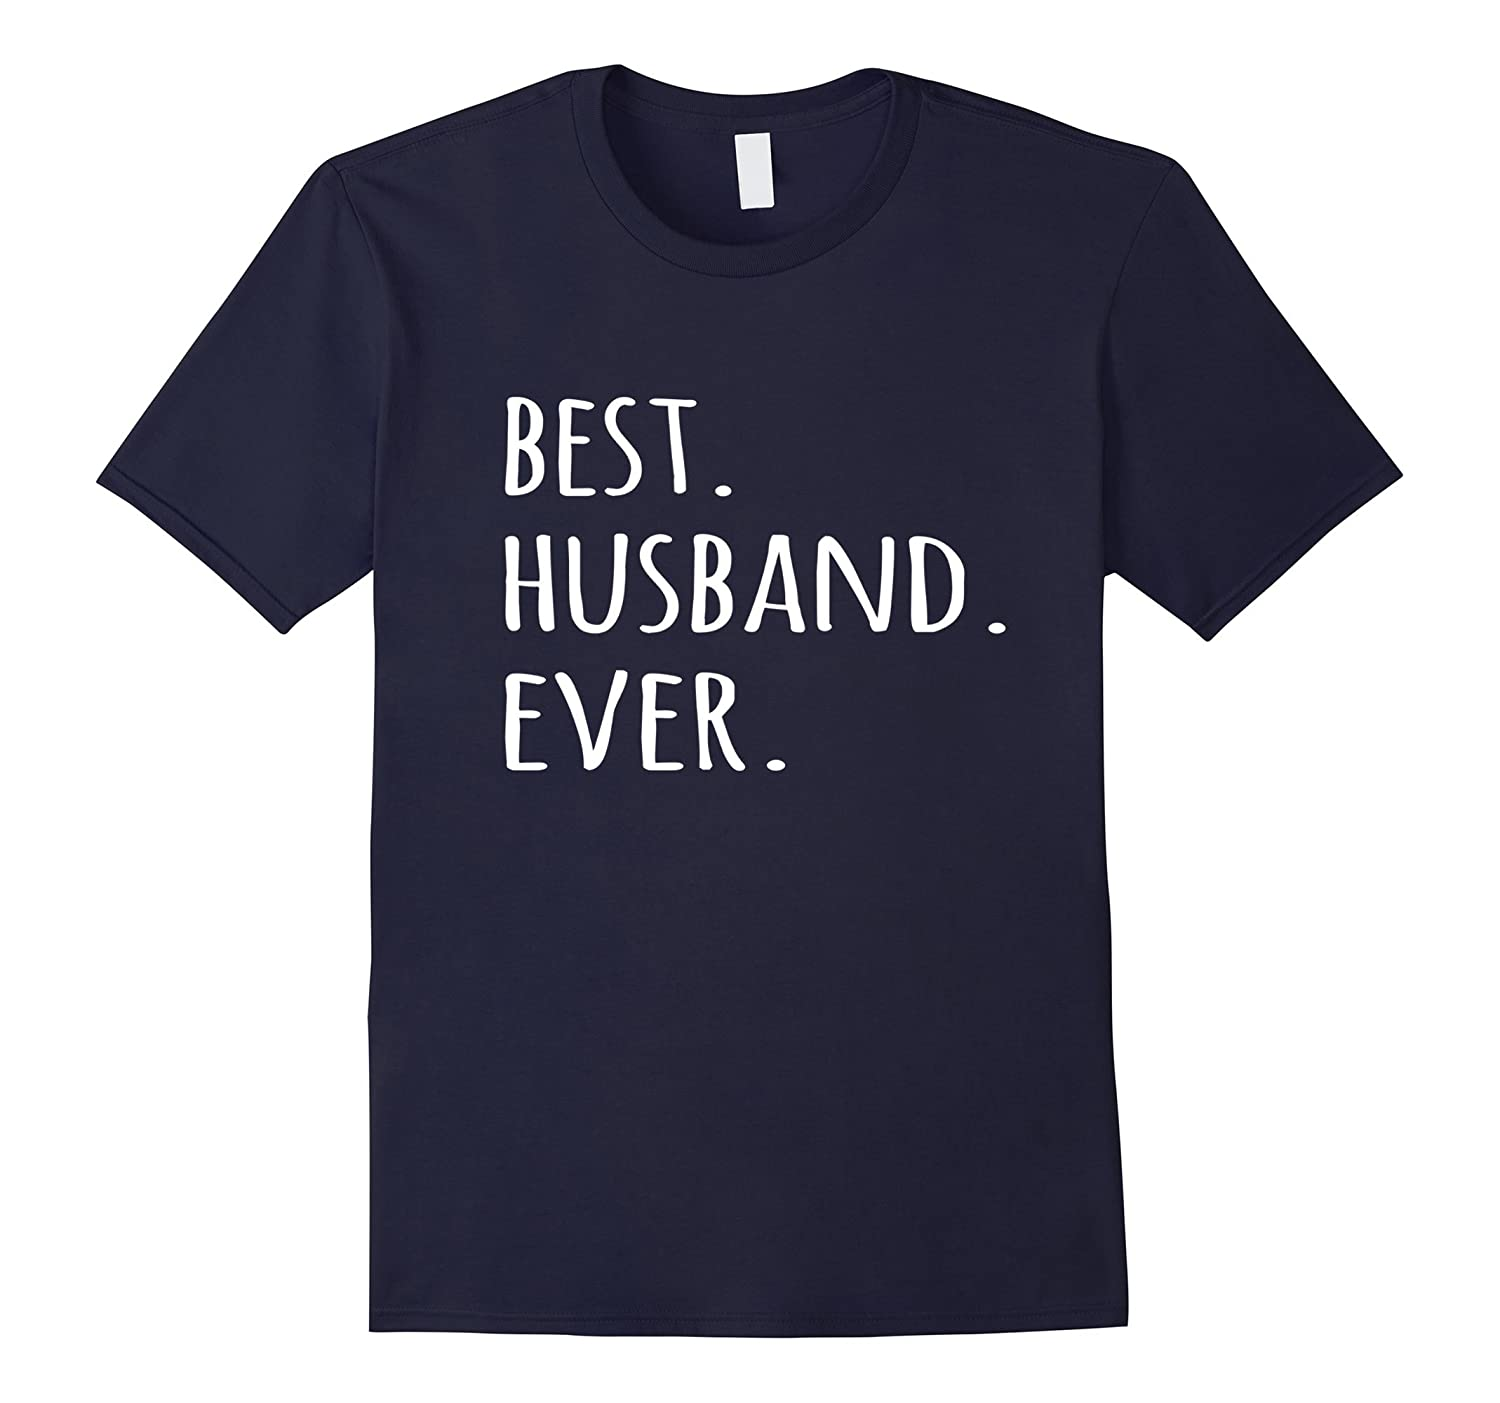 Best Husband Ever T-shirt romantic Mr tshirt tee for him-BN